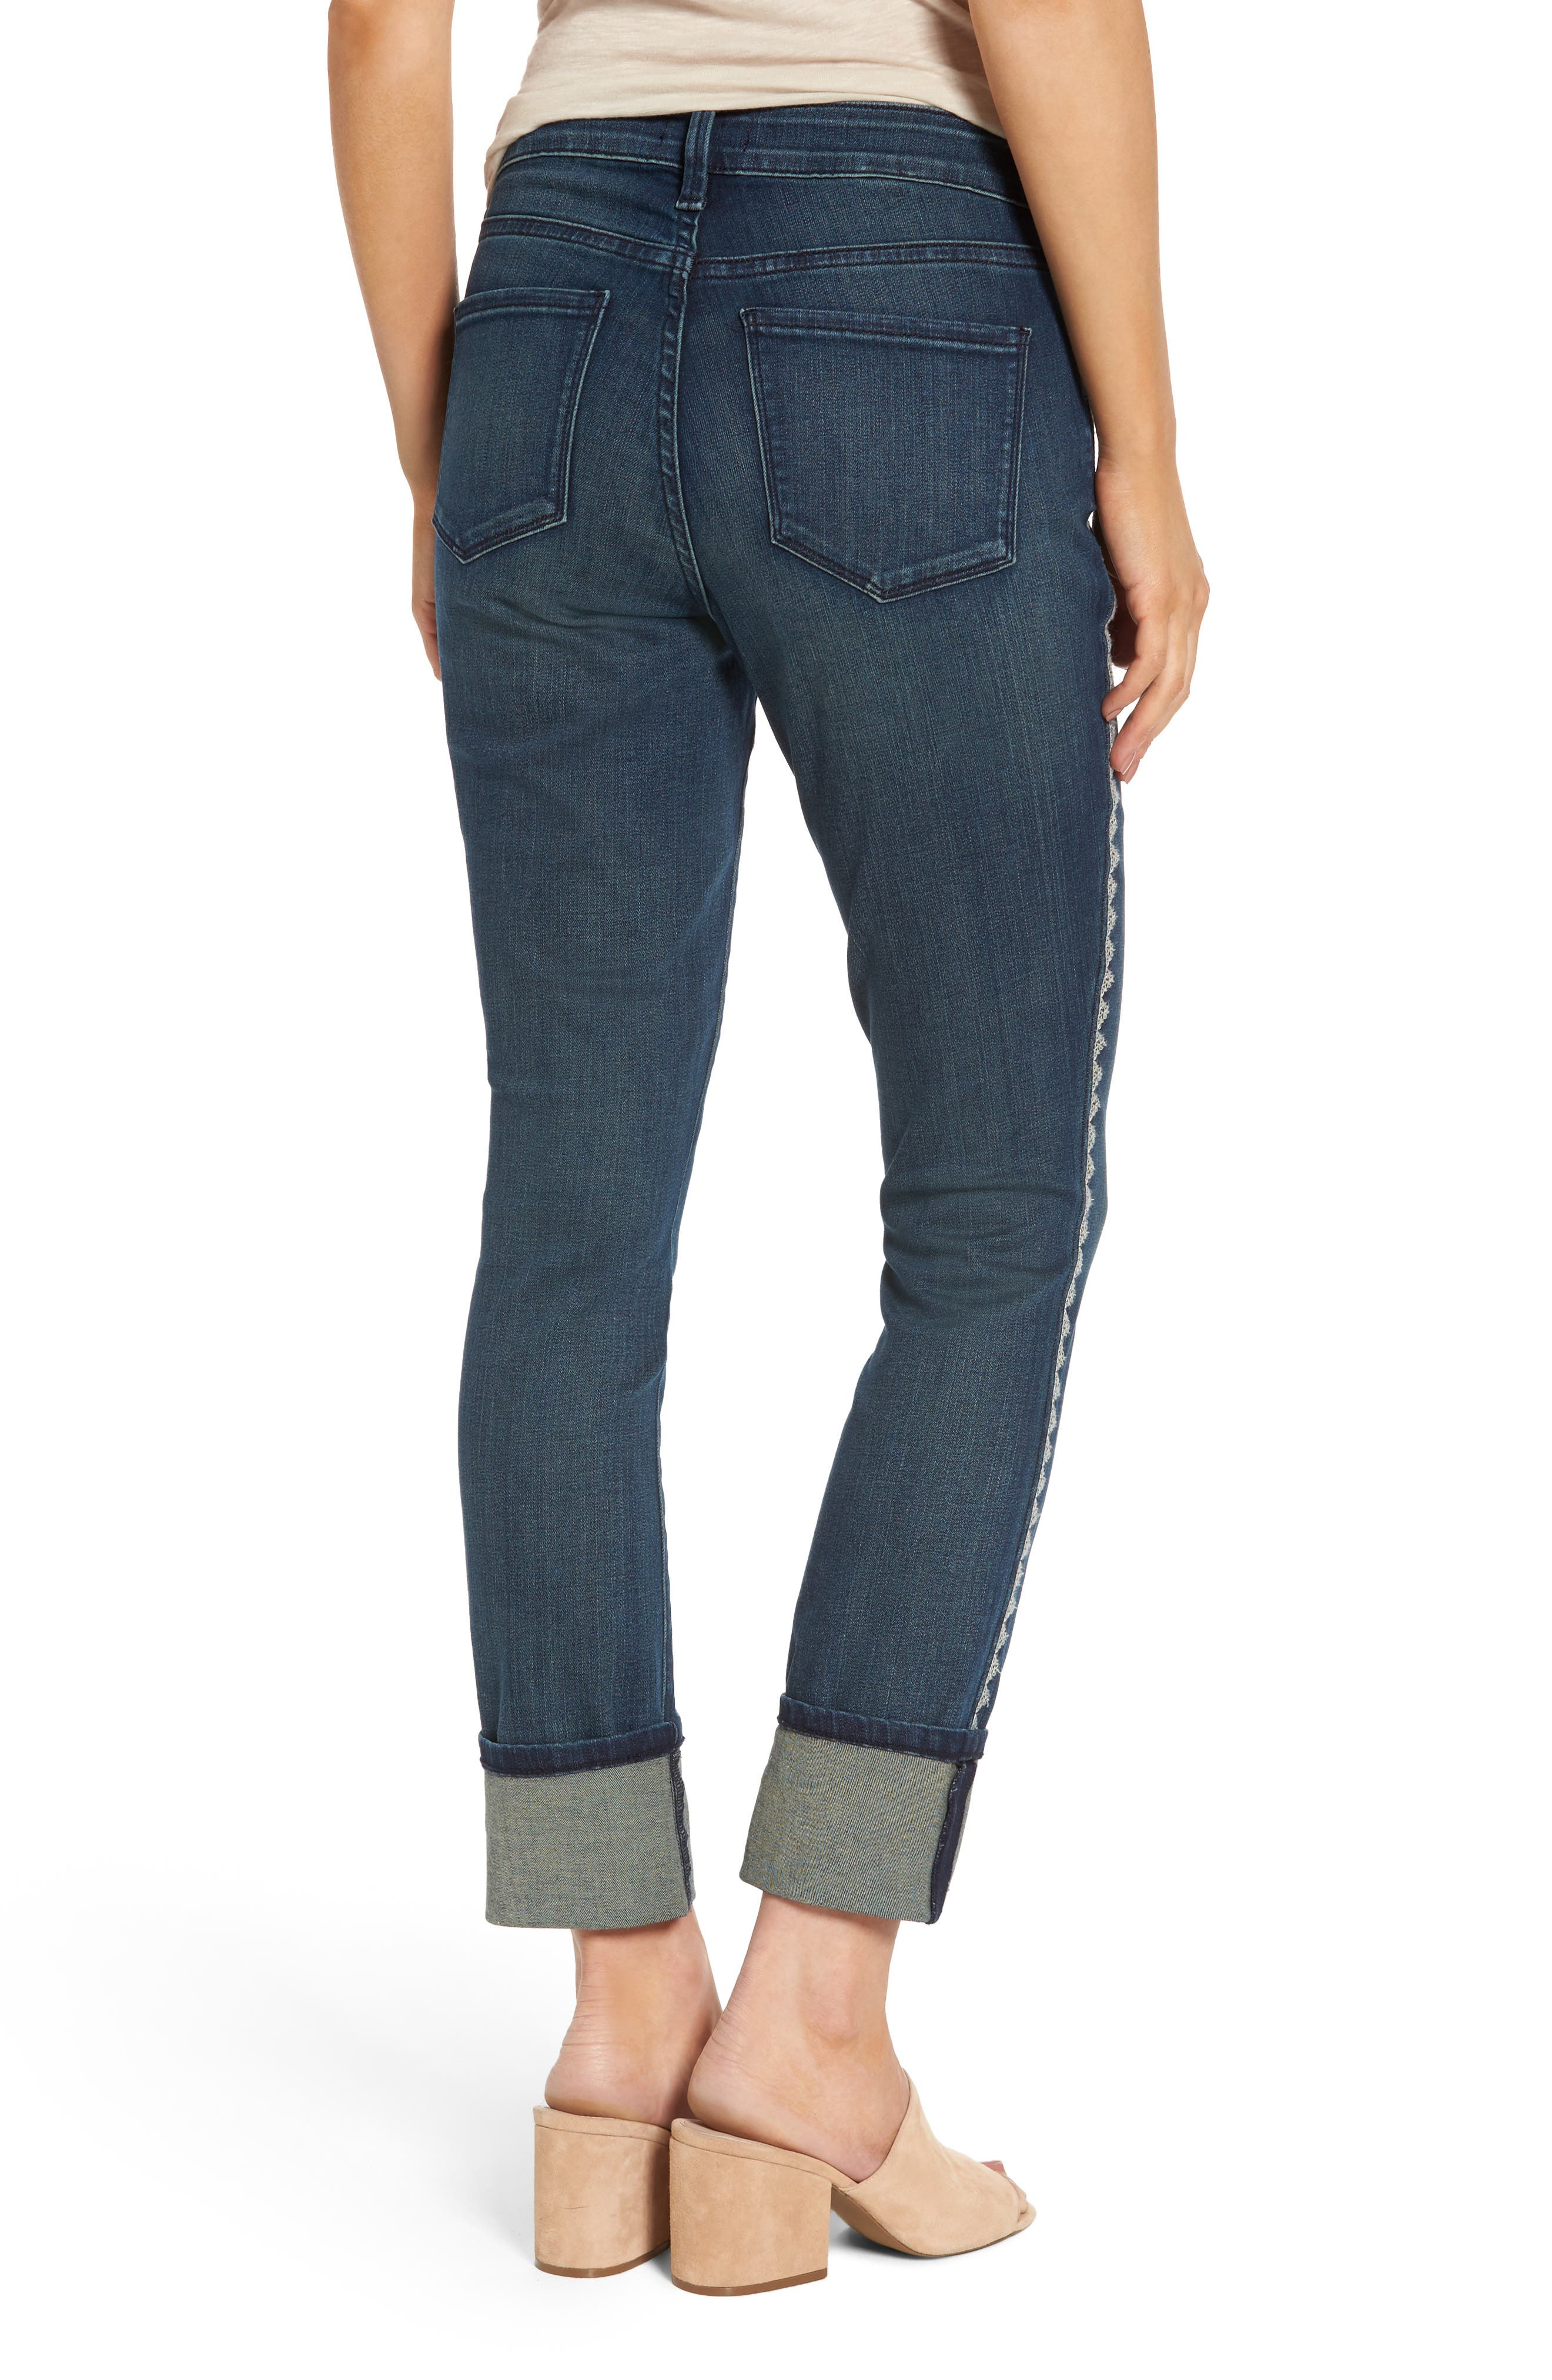 Alina Embroidered Wide Cuff Stretch Ankle Jeans,                             Alternate thumbnail 2, color,                             438